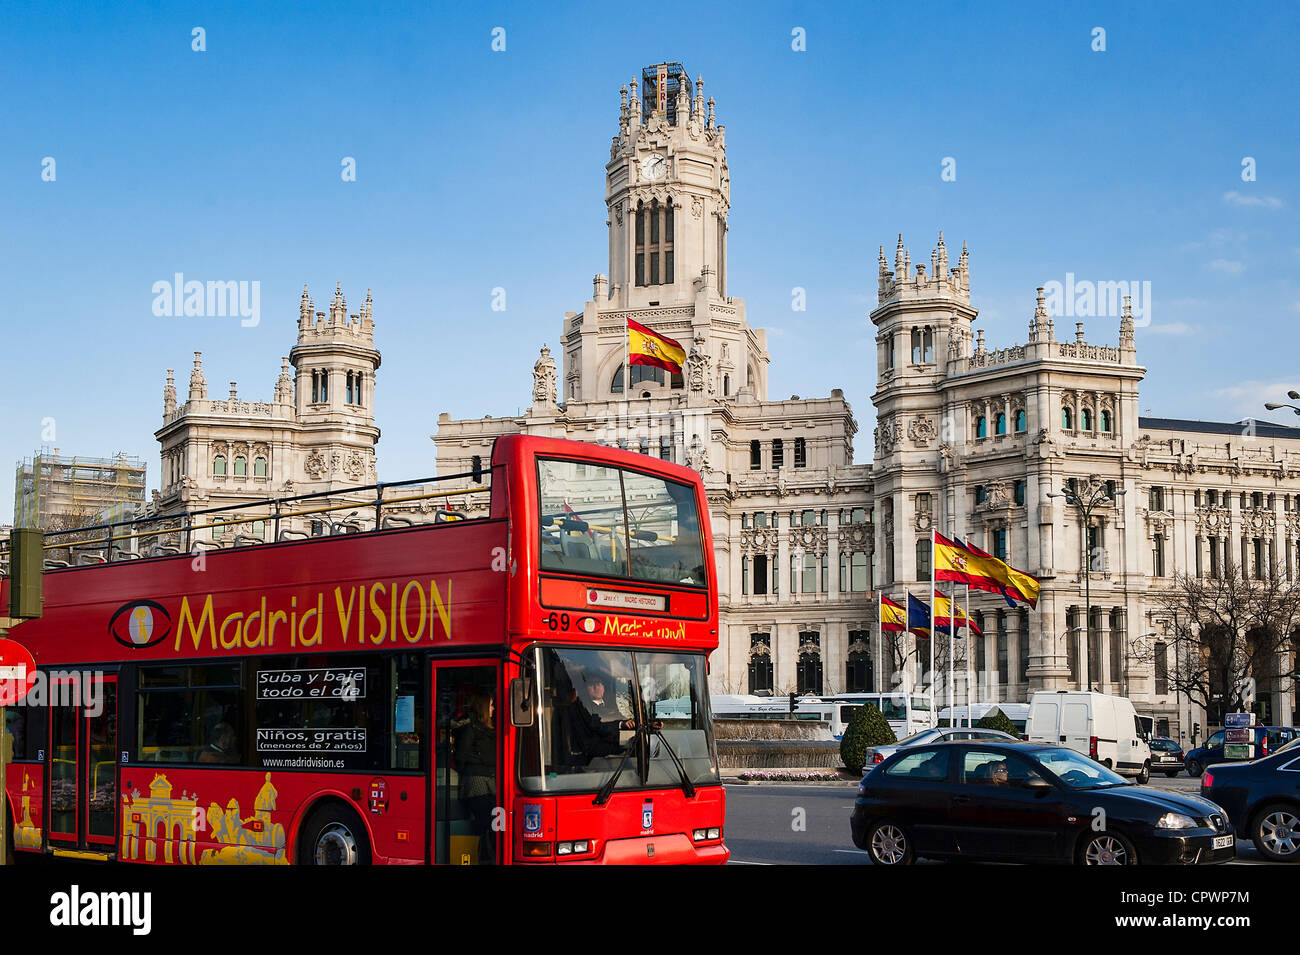 Madrid Vision city tour bus at Plaza de la Cibeles, Madrid, Spain - Stock Image